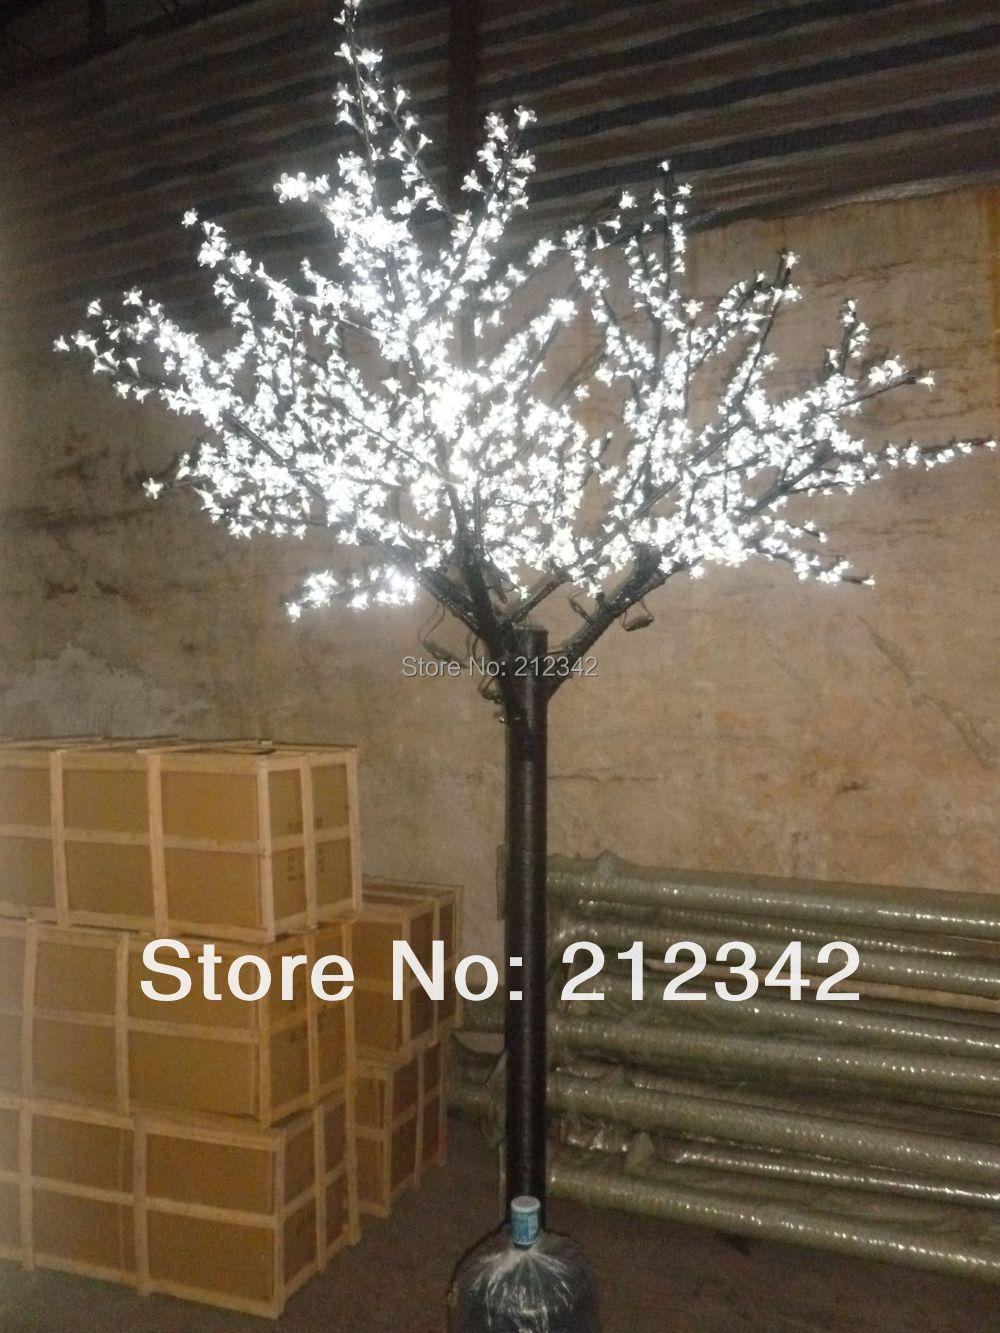 Free Shipping + LED Cherry Blossom Tree Light + Artificial Outdoor Christmas Light + 1,000pcs LEDs + 2m/6.5ft + Holiday Lighting(China (Mainland))